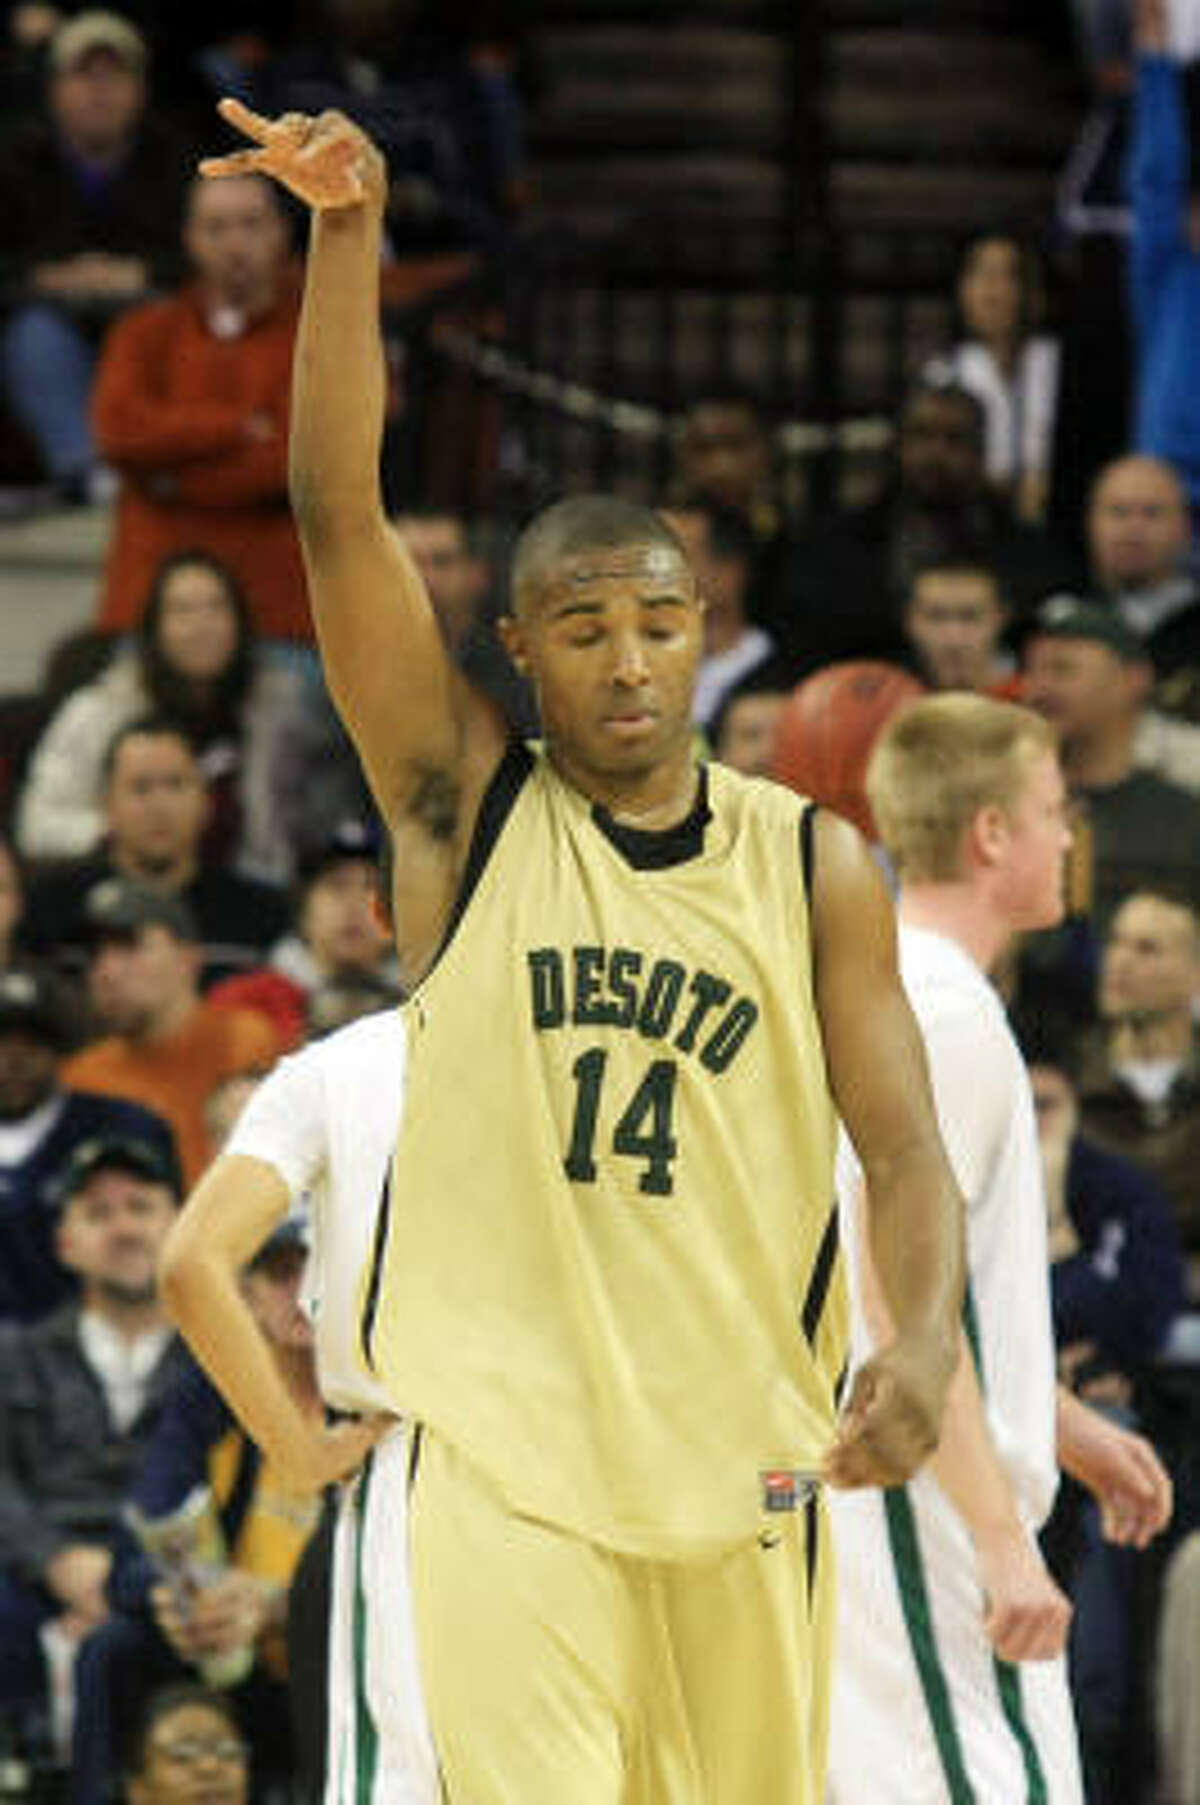 DeSoto's Darius Terrell gestures after making his free throw, the final point of the game against Strake Jesuit.